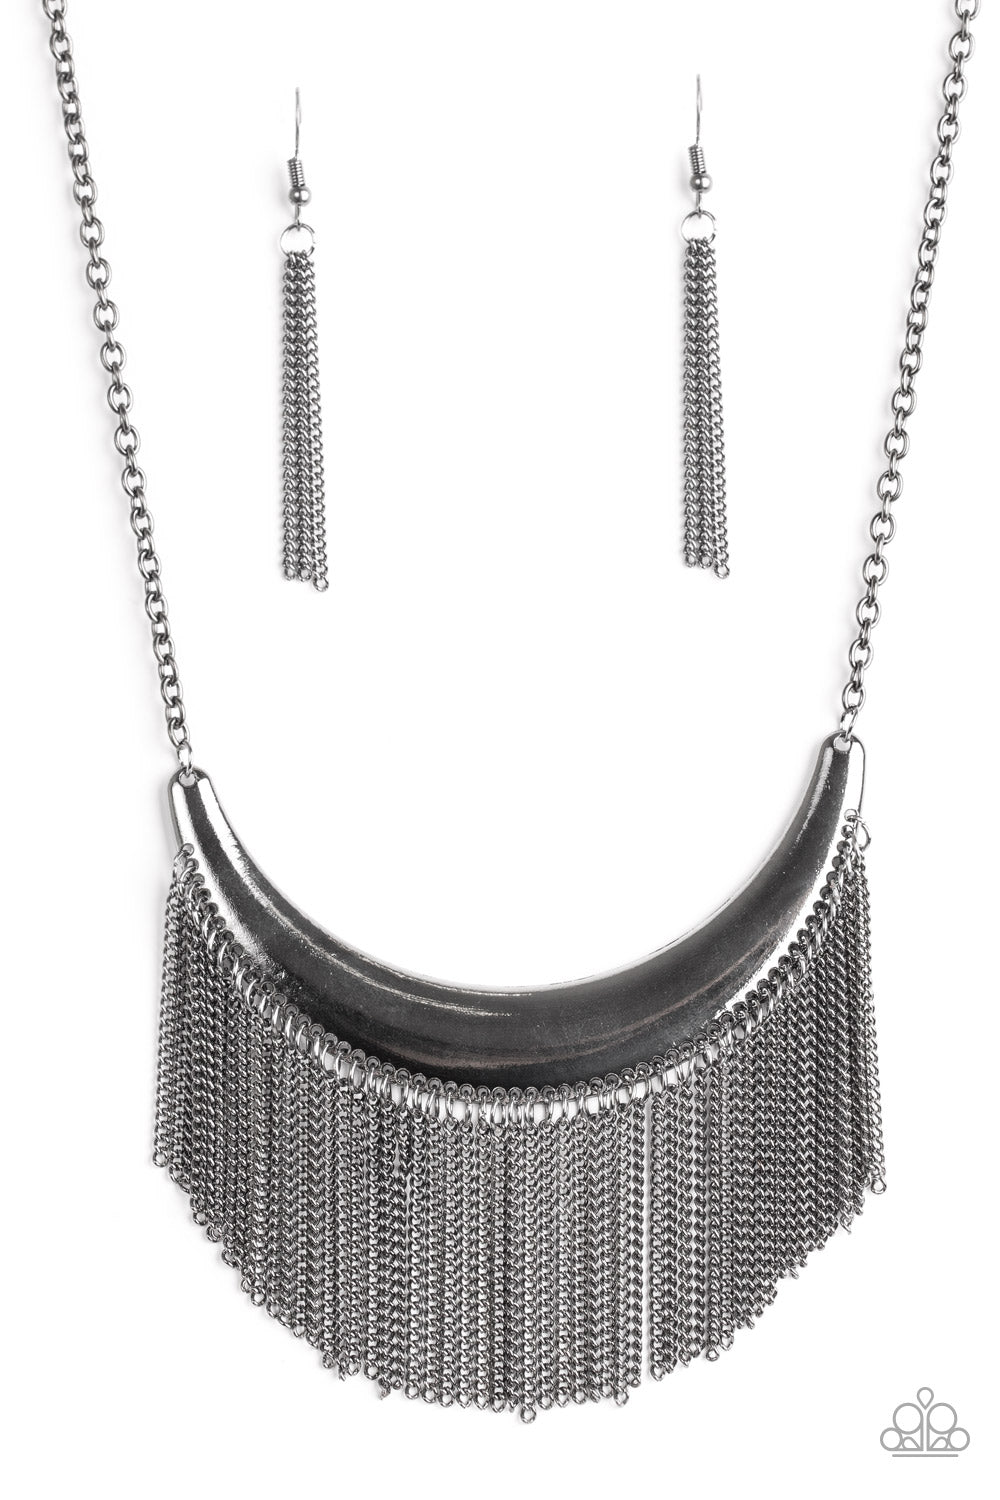 Paparazzi Accessories - Zoo Zone - Black Necklace Set - JMJ Jewelry Collection